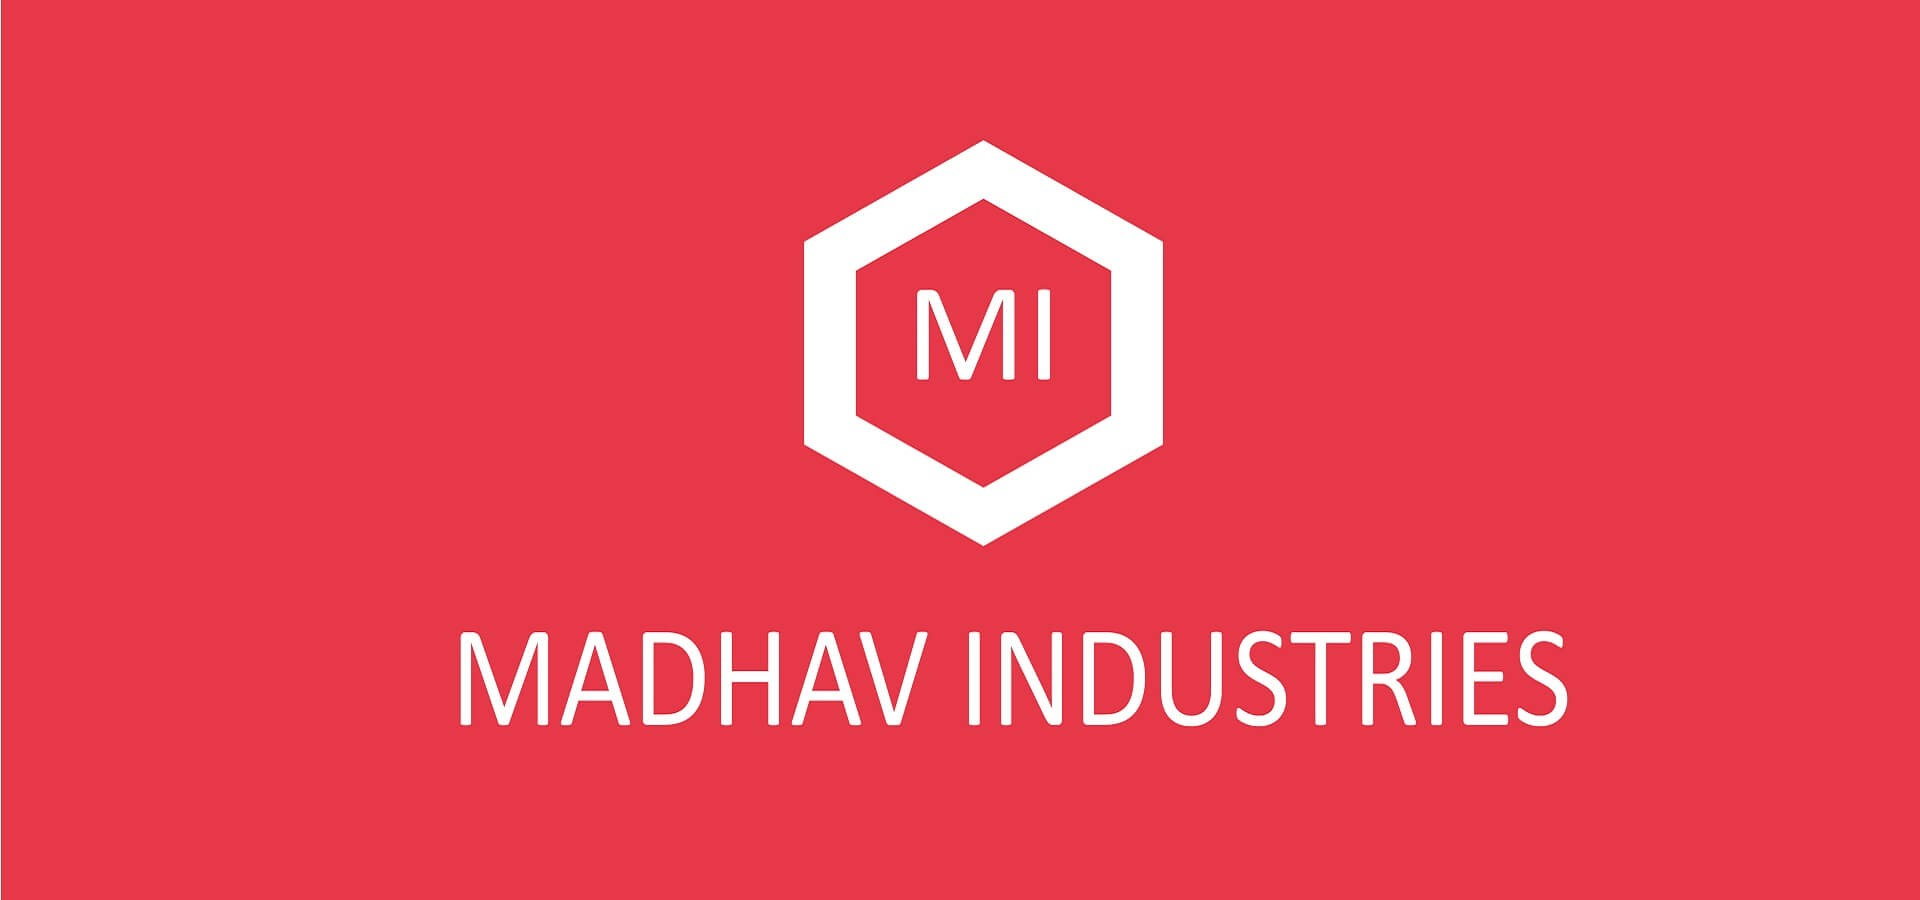 Madhav Industries